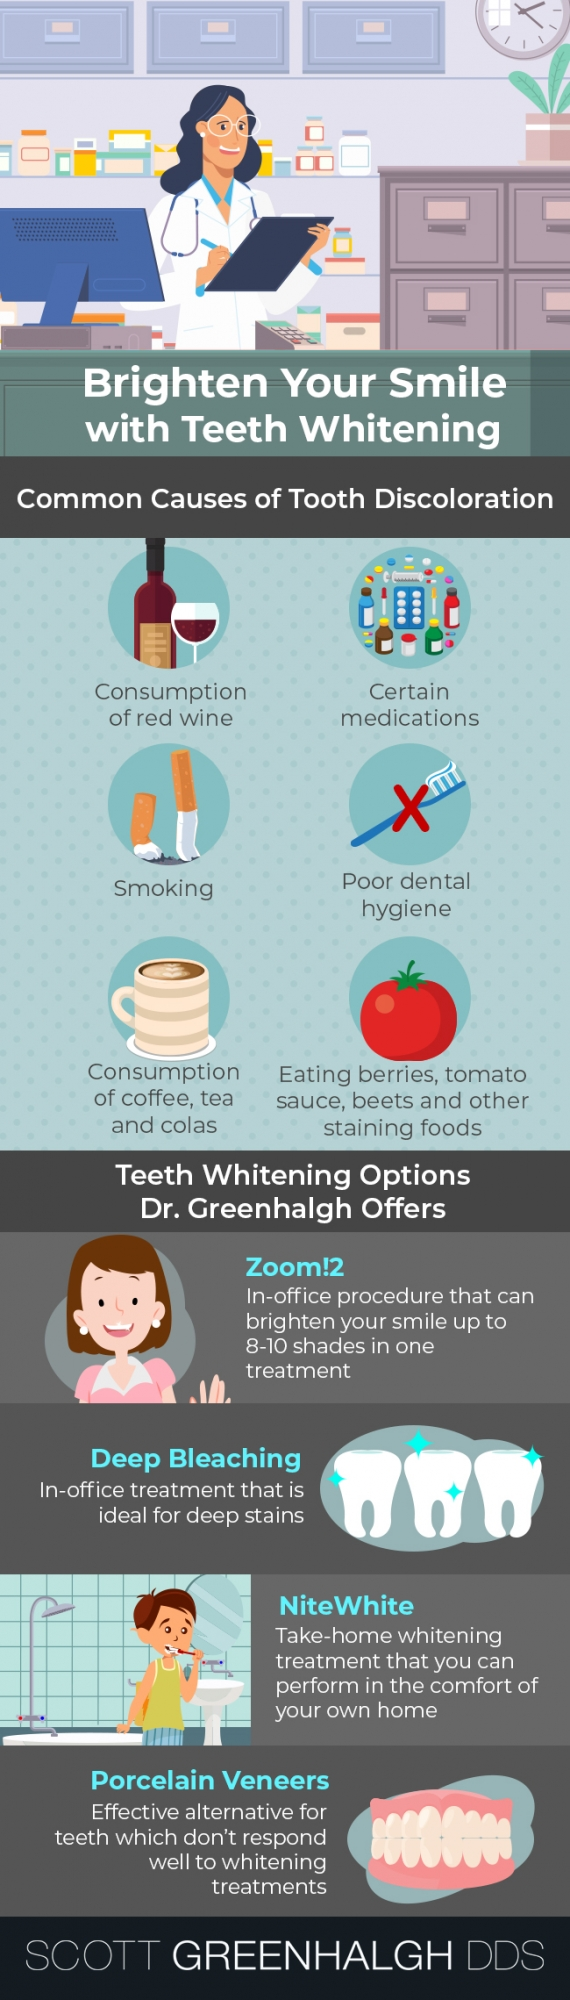 teeth whitening infographic - Lakewood cosmetic dentist